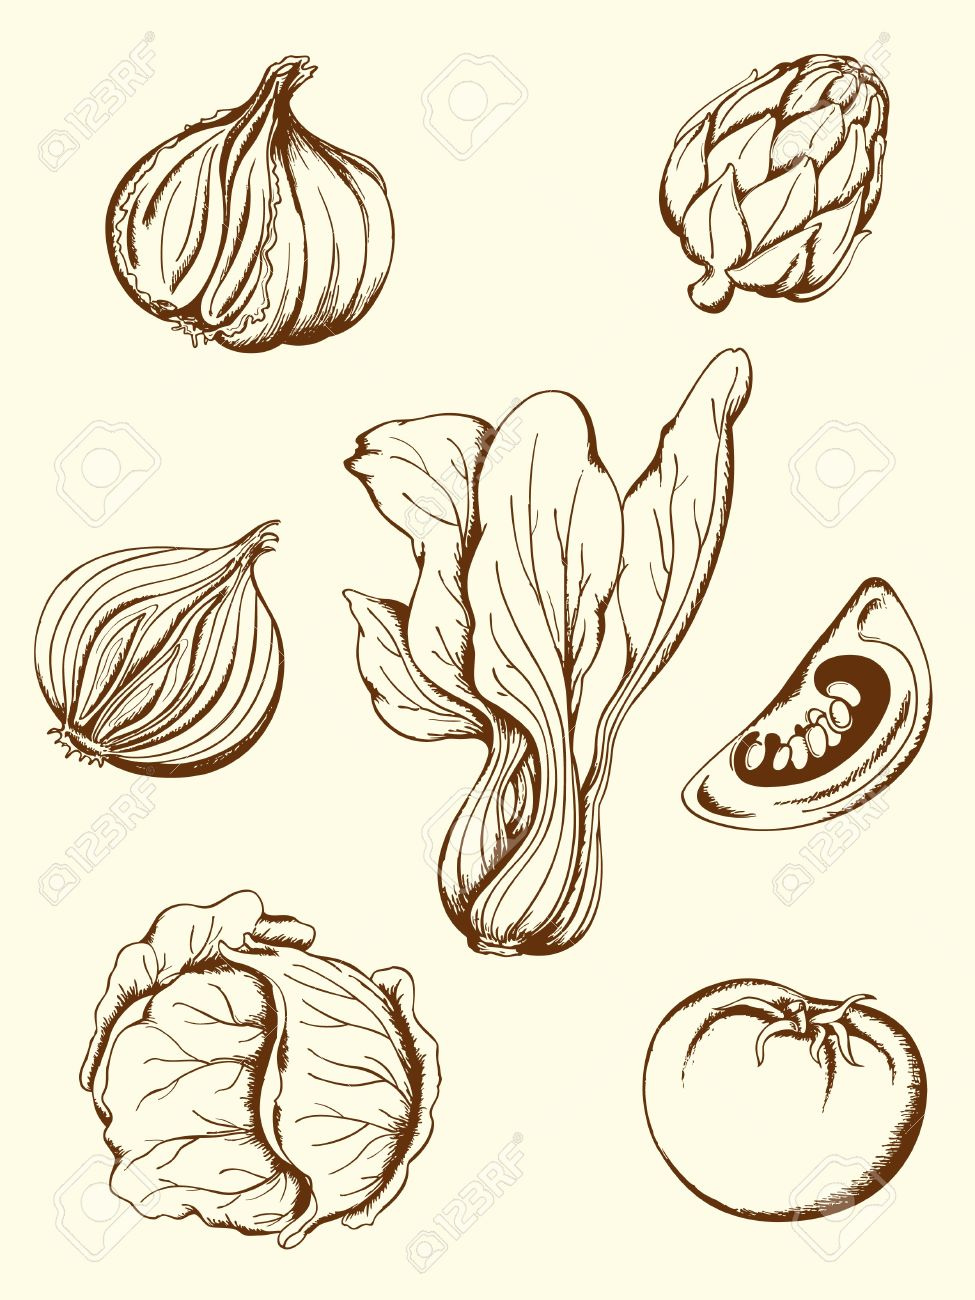 Drawn vegetable realistic Vegetable illustrations illustrations Search Search